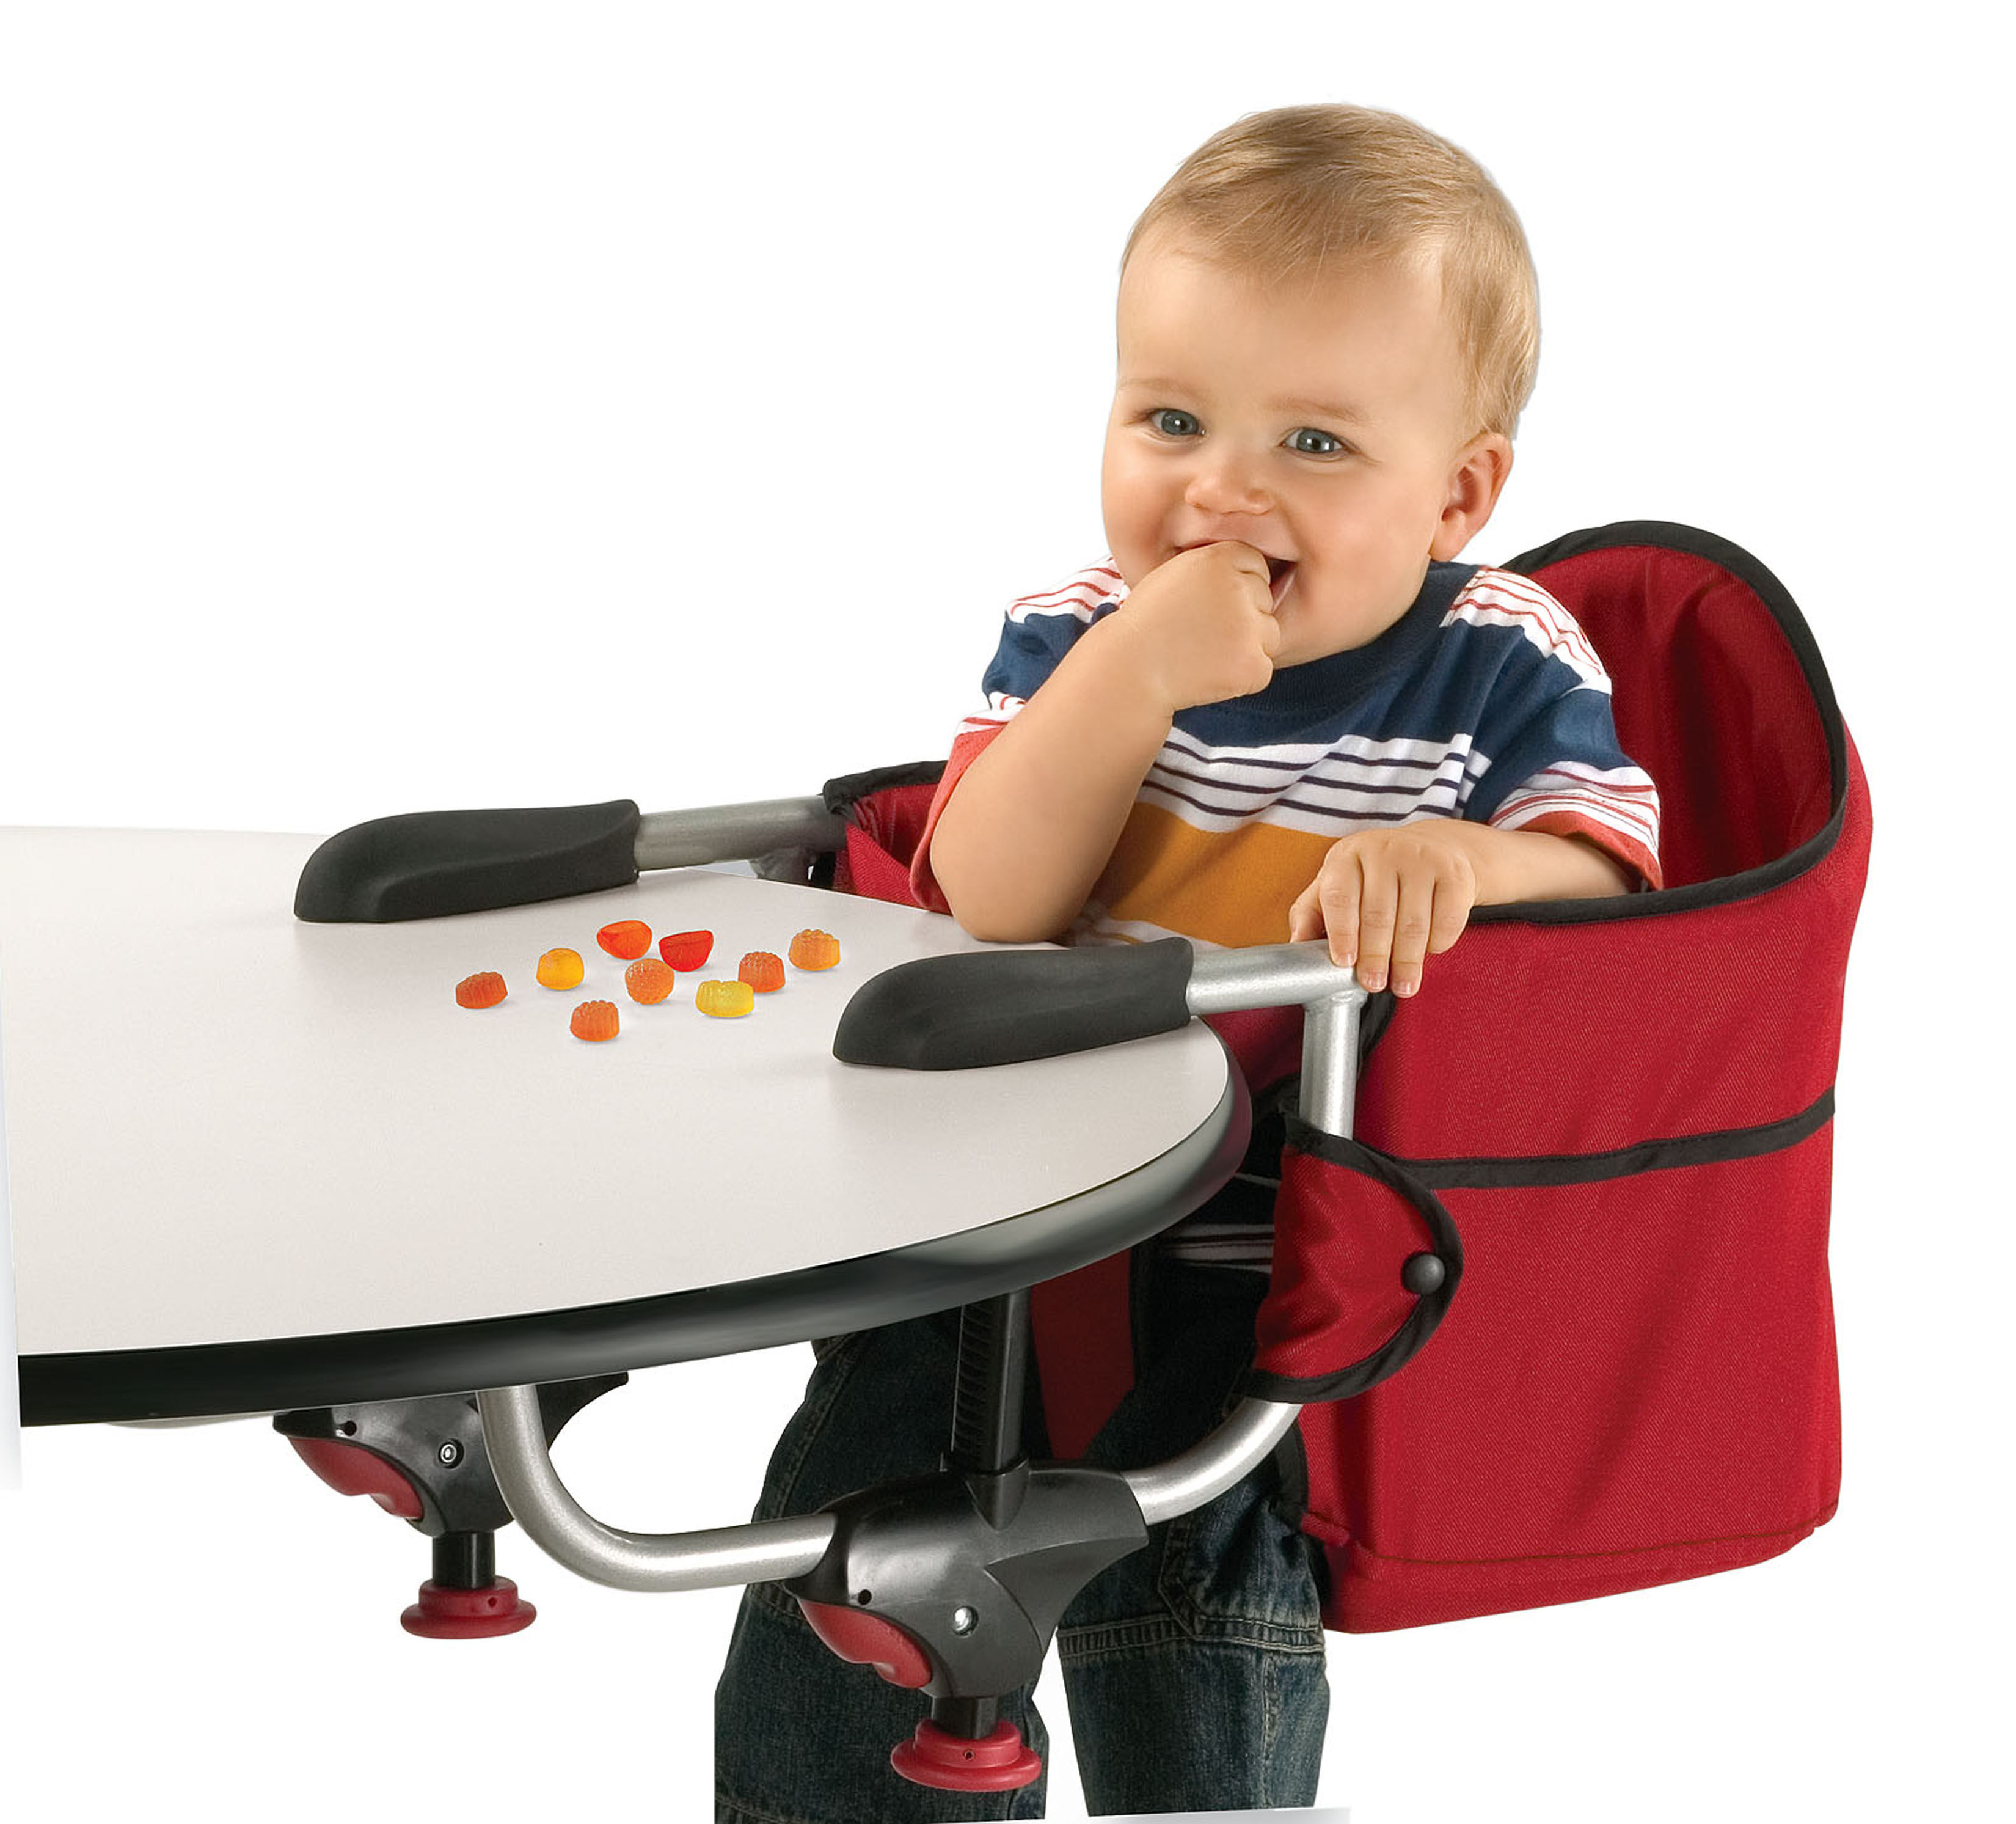 chicco high chair that attaches to table hanging living room ideas caddy hook on papyrus